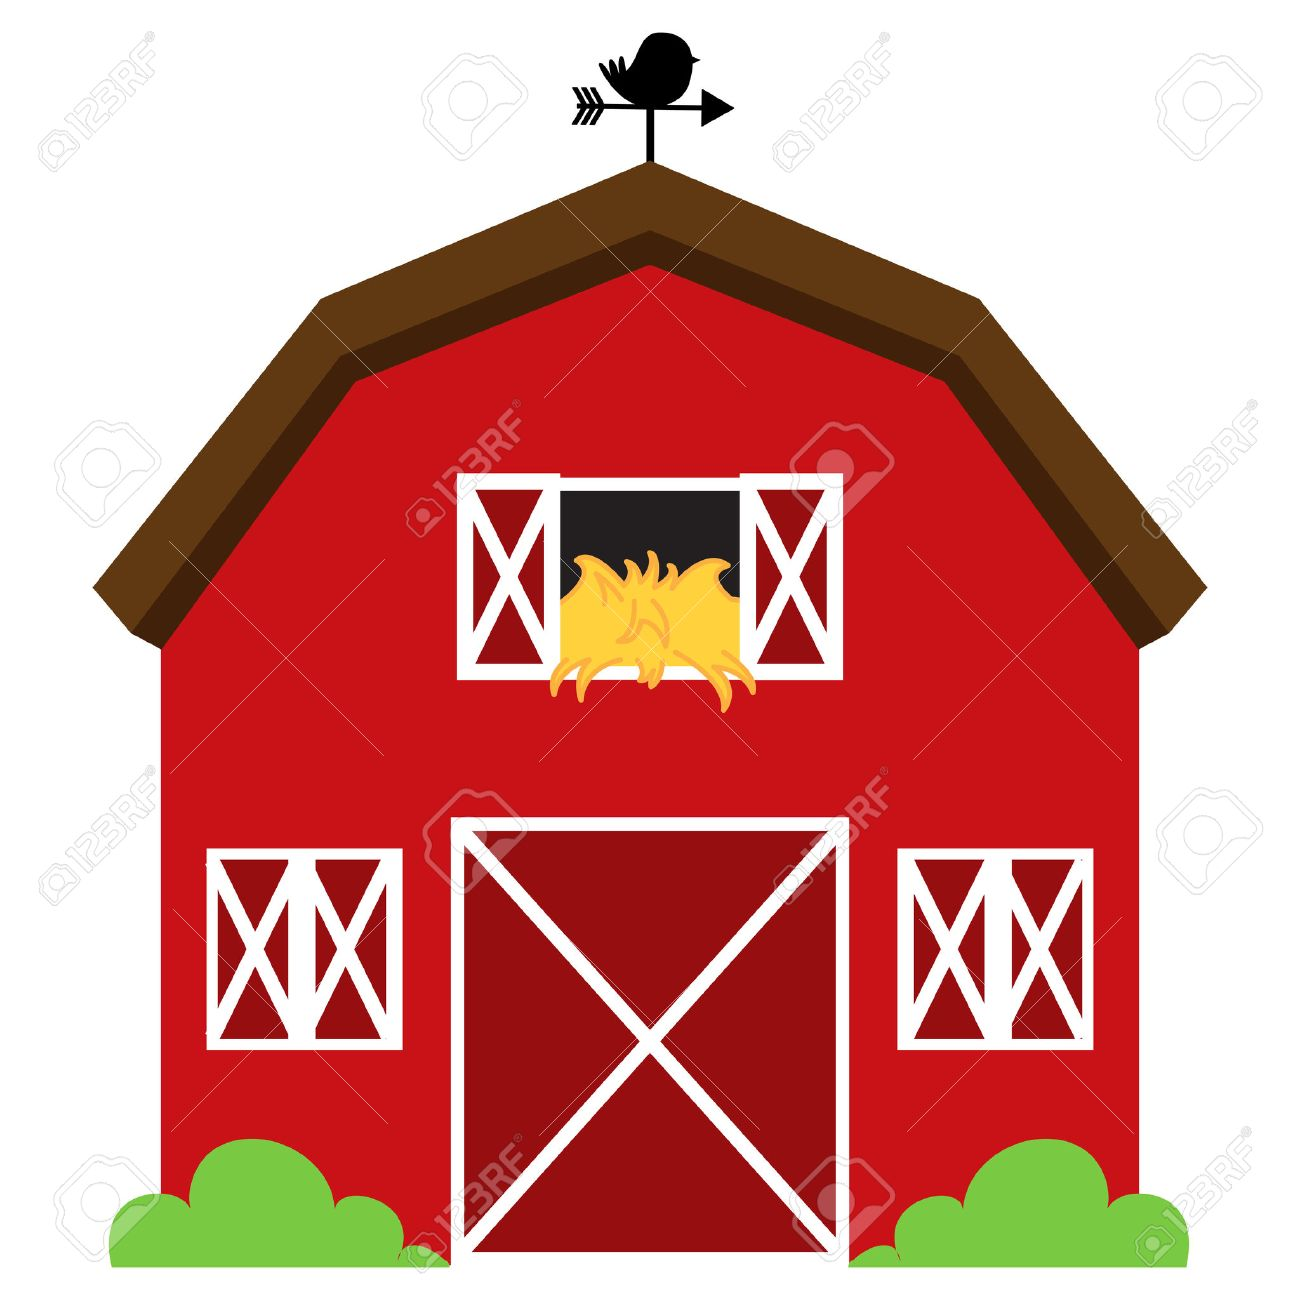 33  Erstaunlich red farmhouse for Red Farmhouse Clipart  568zmd